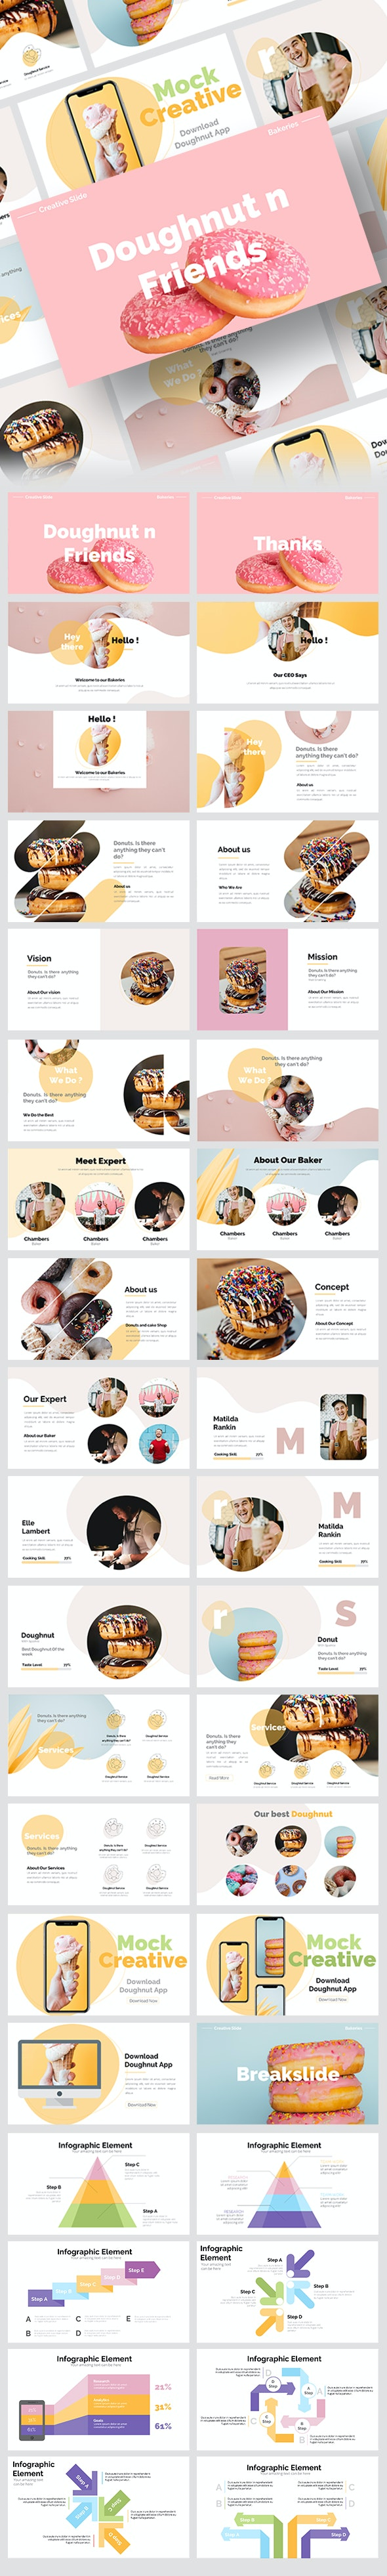 Doughnut n Friends - Google Slide Template - Google Slides Presentation Templates